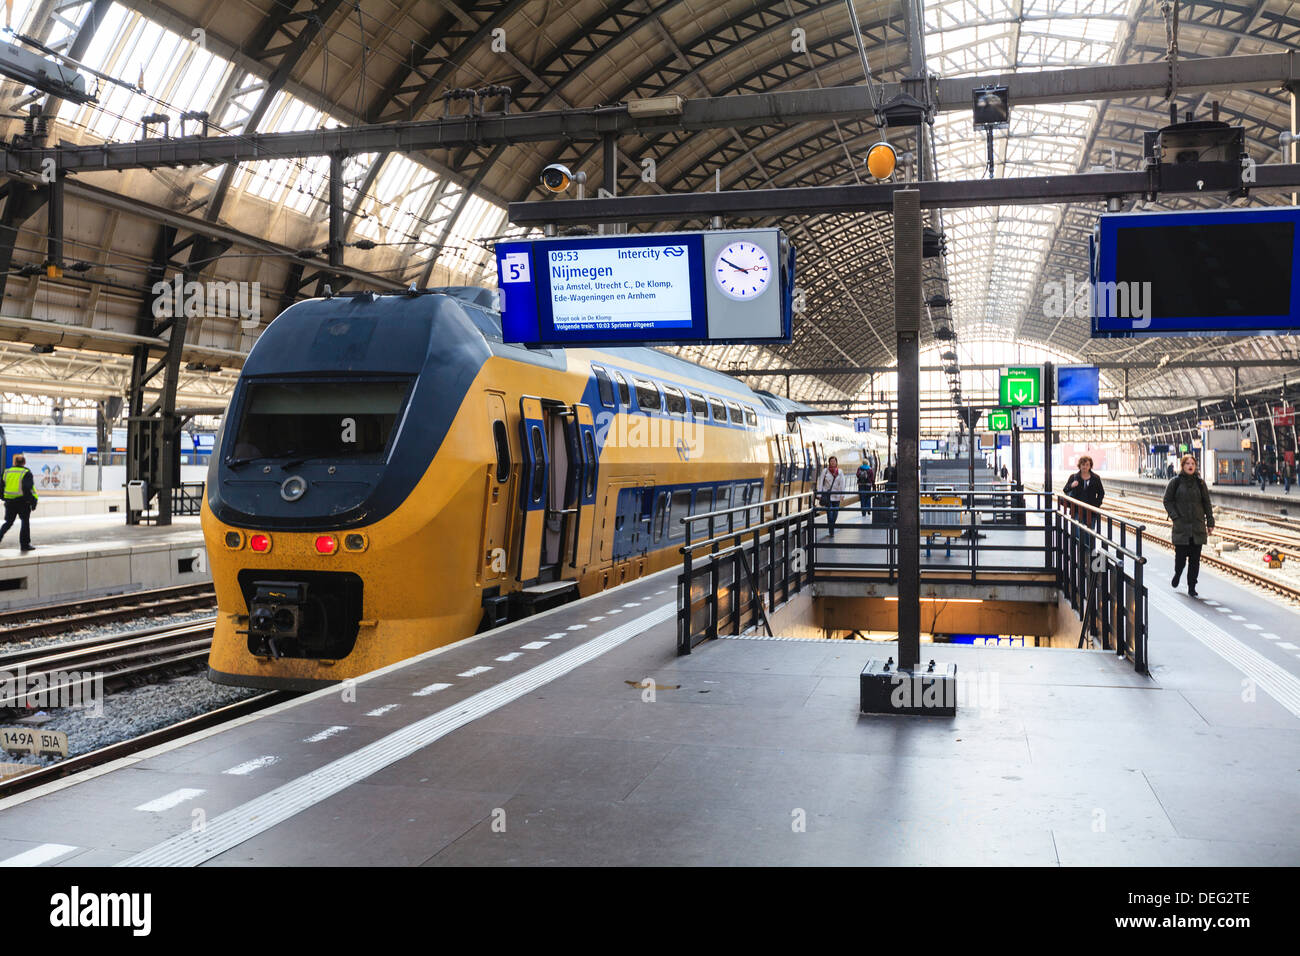 Intercity train in a platform at Central Station, Amsterdam, Netherlands, Europe - Stock Image